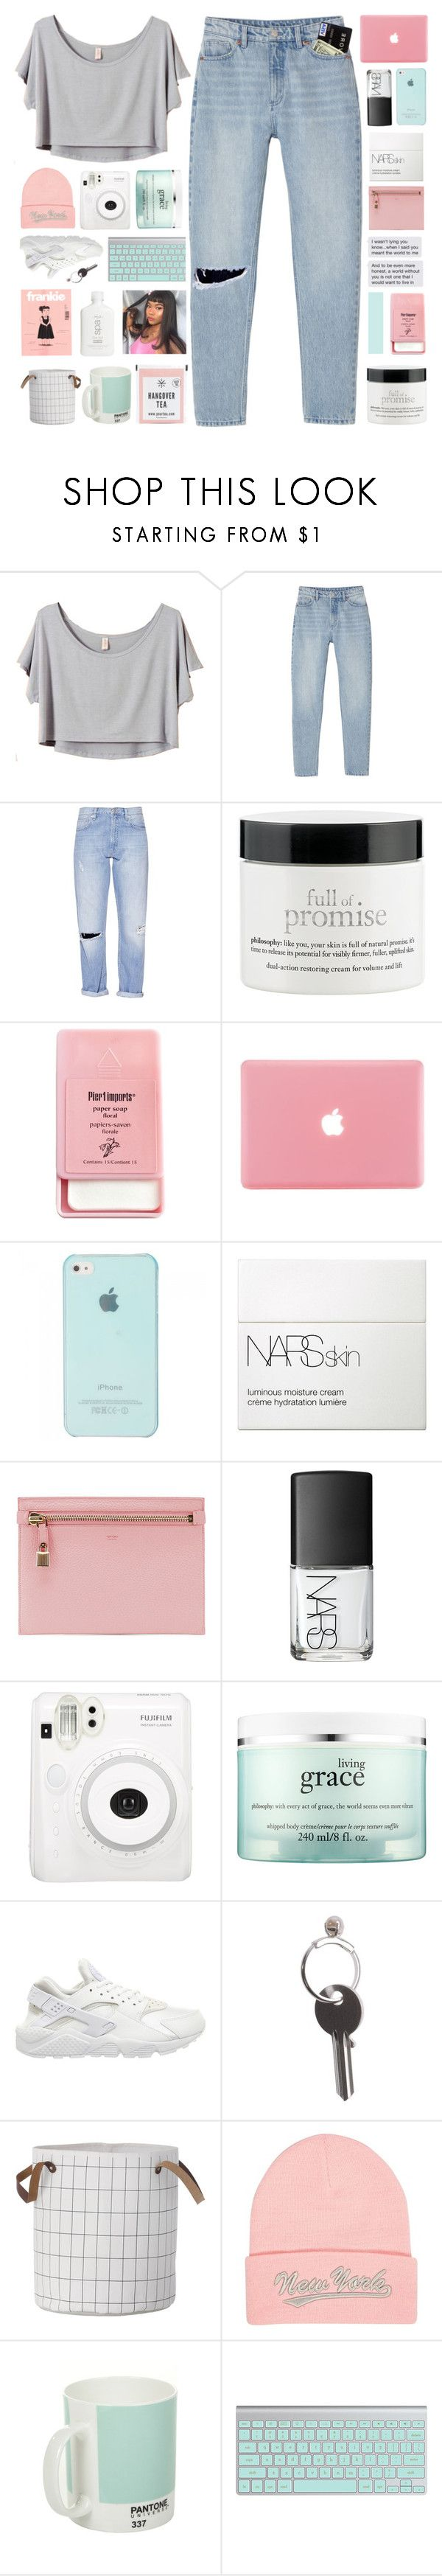 """""""SABAD X SAMIRA"""" by samiikins ❤ liked on Polyvore featuring Monki, French Connection, philosophy, Pier 1 Imports, NARS Cosmetics, Tom Ford, Fuji, NIKE, Maison Margiela and River Island"""